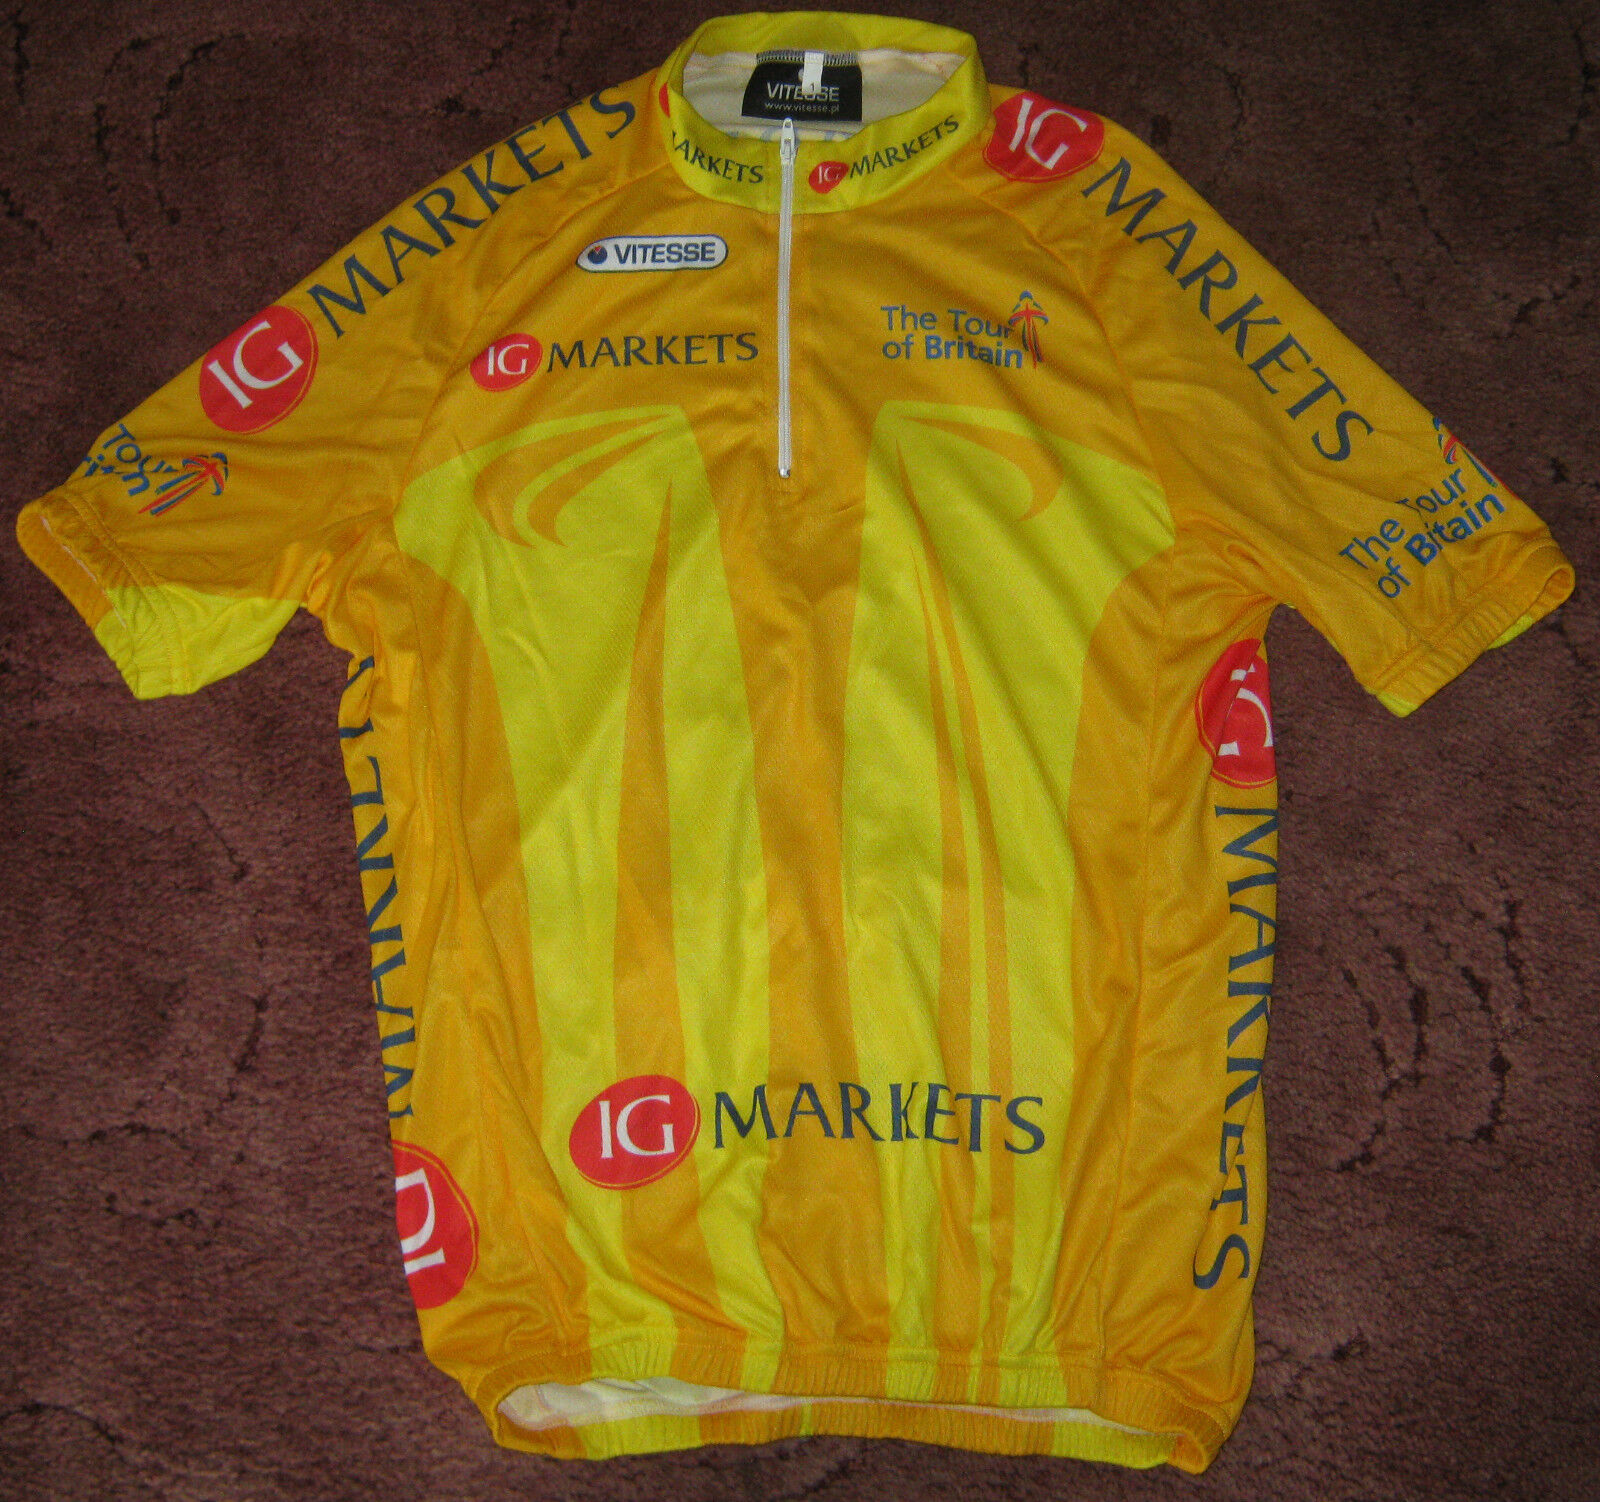 TOUR OF BRITAIN 2011 LEADERS VITESSE CYCLING JERSEY  [S] UNUSED  fashionable